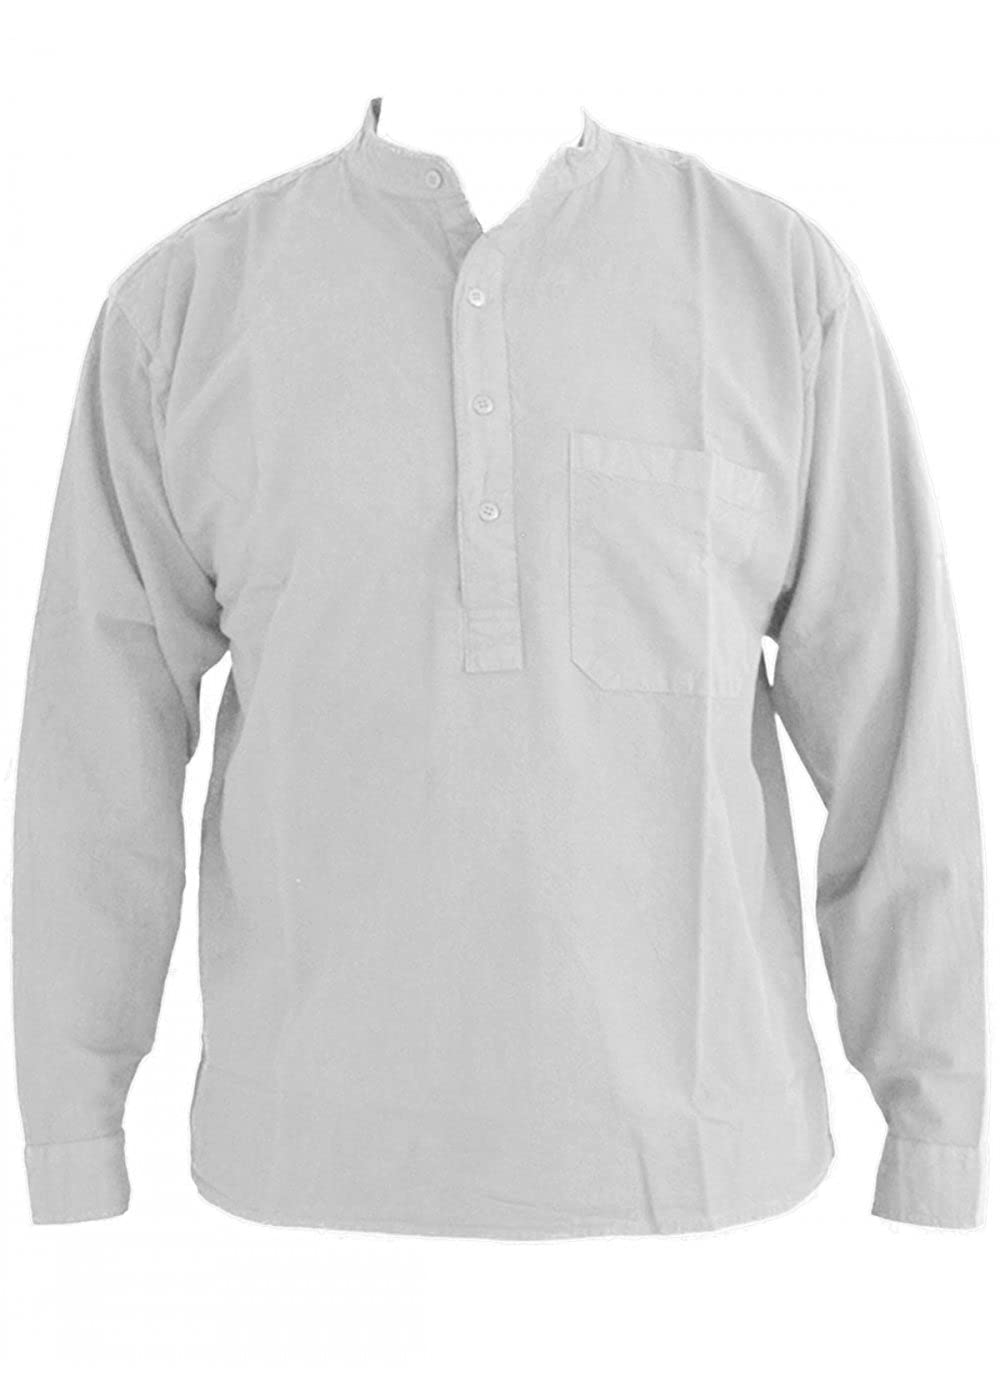 1920s Men's Dress Shirts, Casual Shirts White Grandad Collarless Shirt Cotton Sizes Small to 2XL £23.99 AT vintagedancer.com